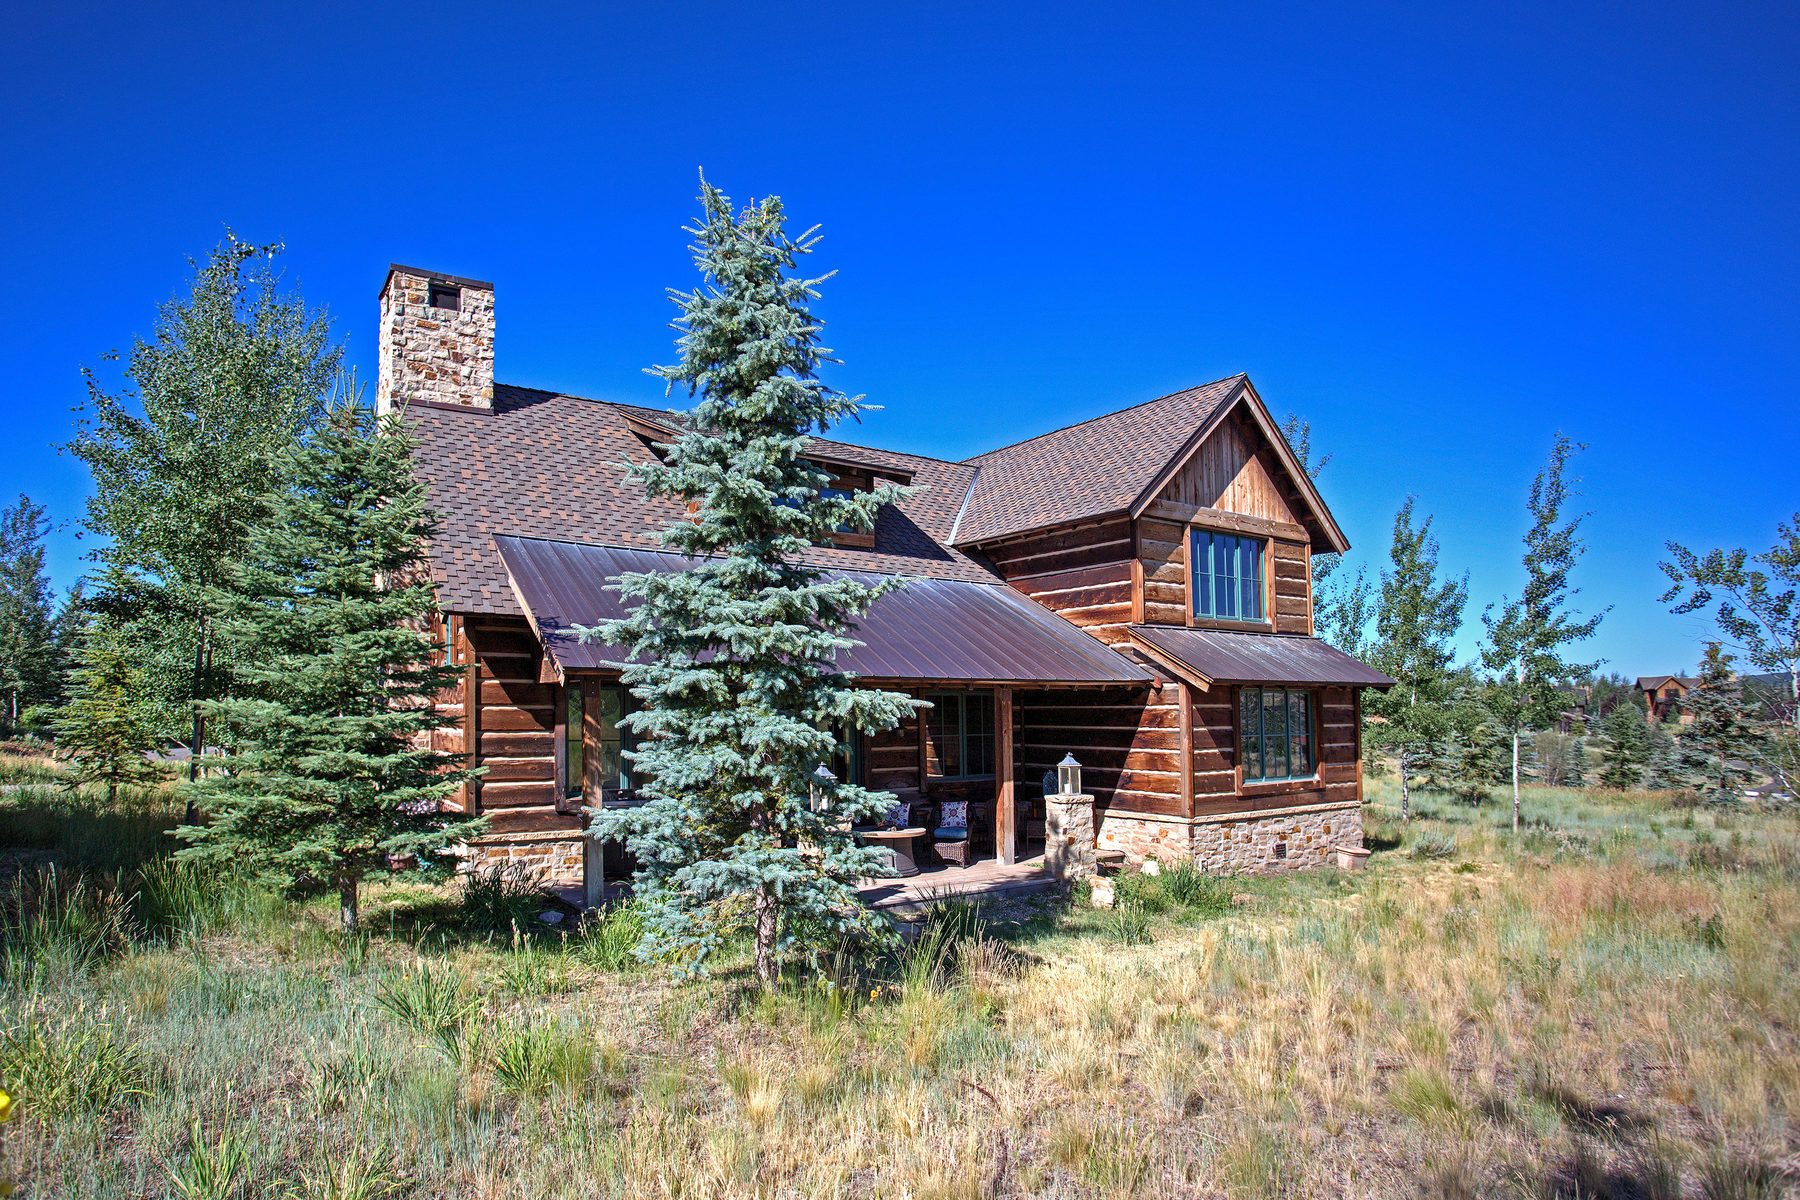 Maison unifamiliale pour l Vente à Exclusive Setting in the Trapper Cabin Neighborhood 7933 Chuck Wagon Ct Lot 61 Park City, Utah, 84098 États-Unis